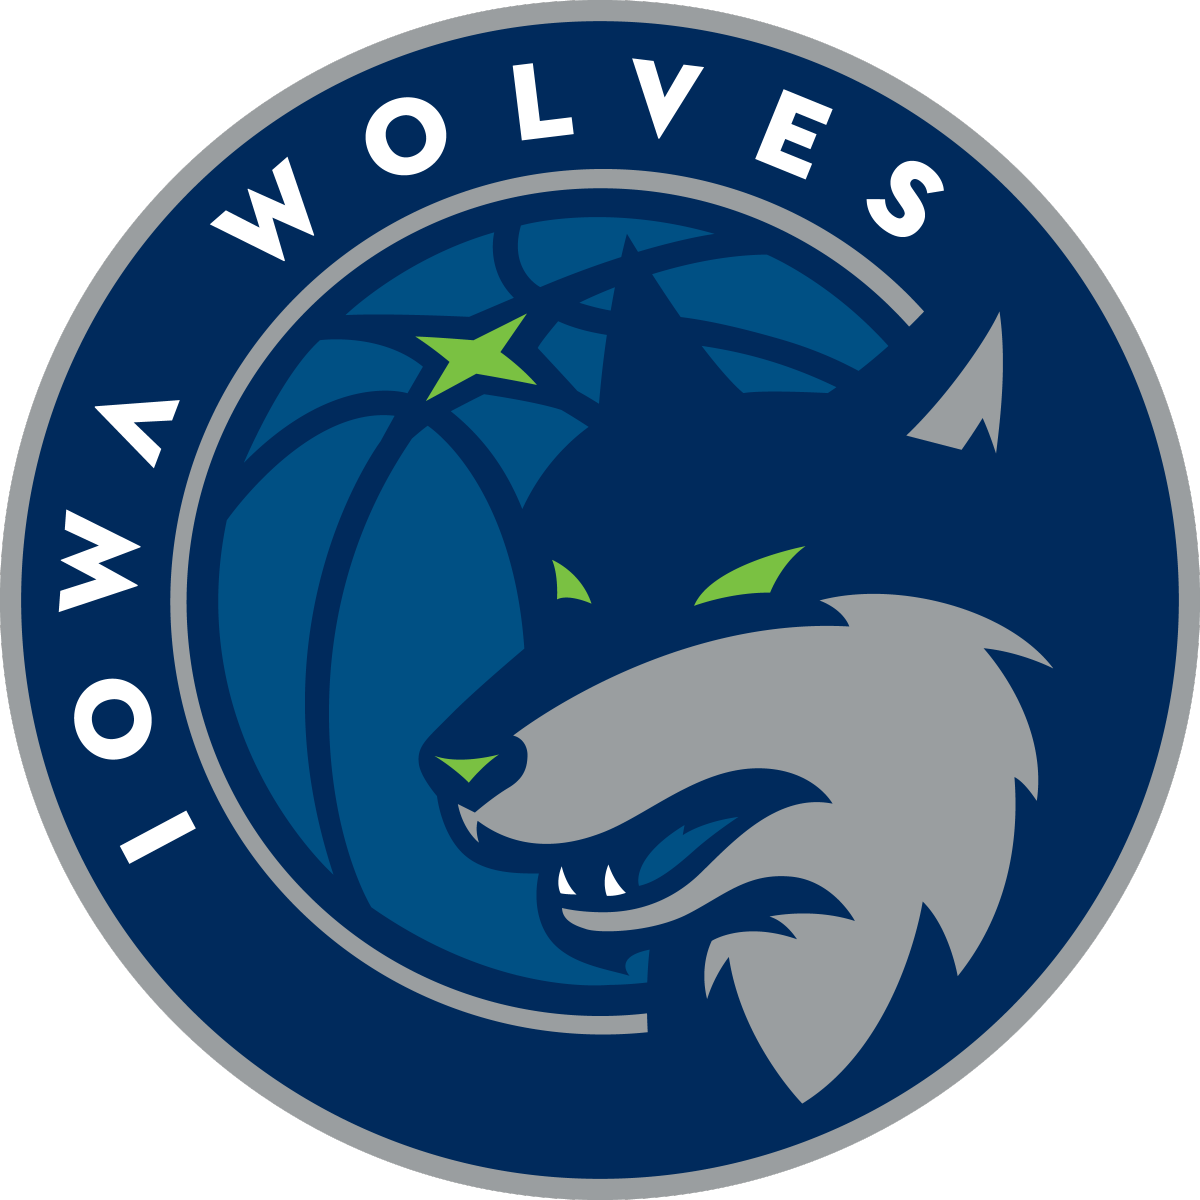 Pics photos houston texans logo chris creamer s sports - Iowa Wolves Primary Logo On Chris Creamer S Sports Logos Page Sportslogos A Virtual Museum Of Sports Logos Uniforms And Historical Items